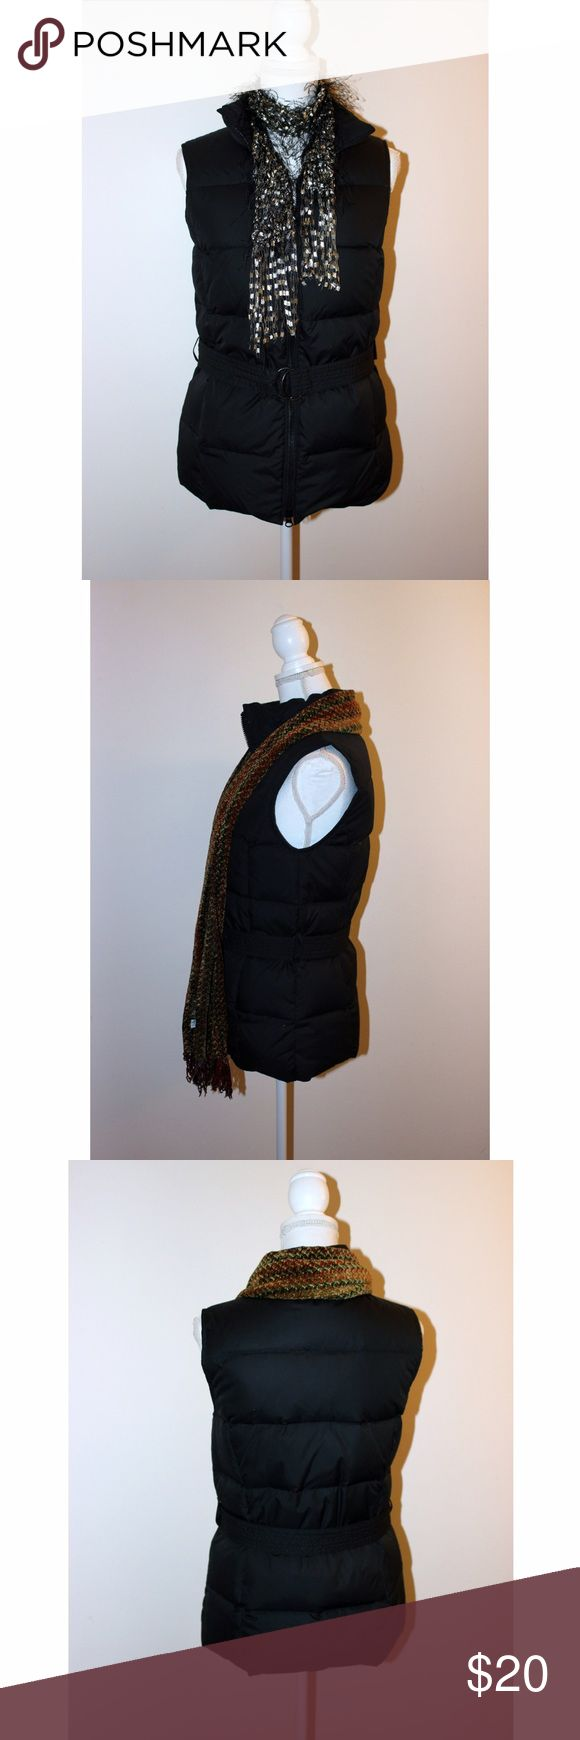 """Down-Filled Belted Black Vest from the Gap Look great and keep warm in this vest from the Gap. It has a front zip, belt, and side pockets. The shell and lining are polyester, and it is down-filled. Measurements: Armpit to armpit 17.5"""" - Waist 36"""" - Hips 39"""" - Length 25"""". It is new without tags from the Gap and is size Small. GAP Jackets & Coats Vests"""